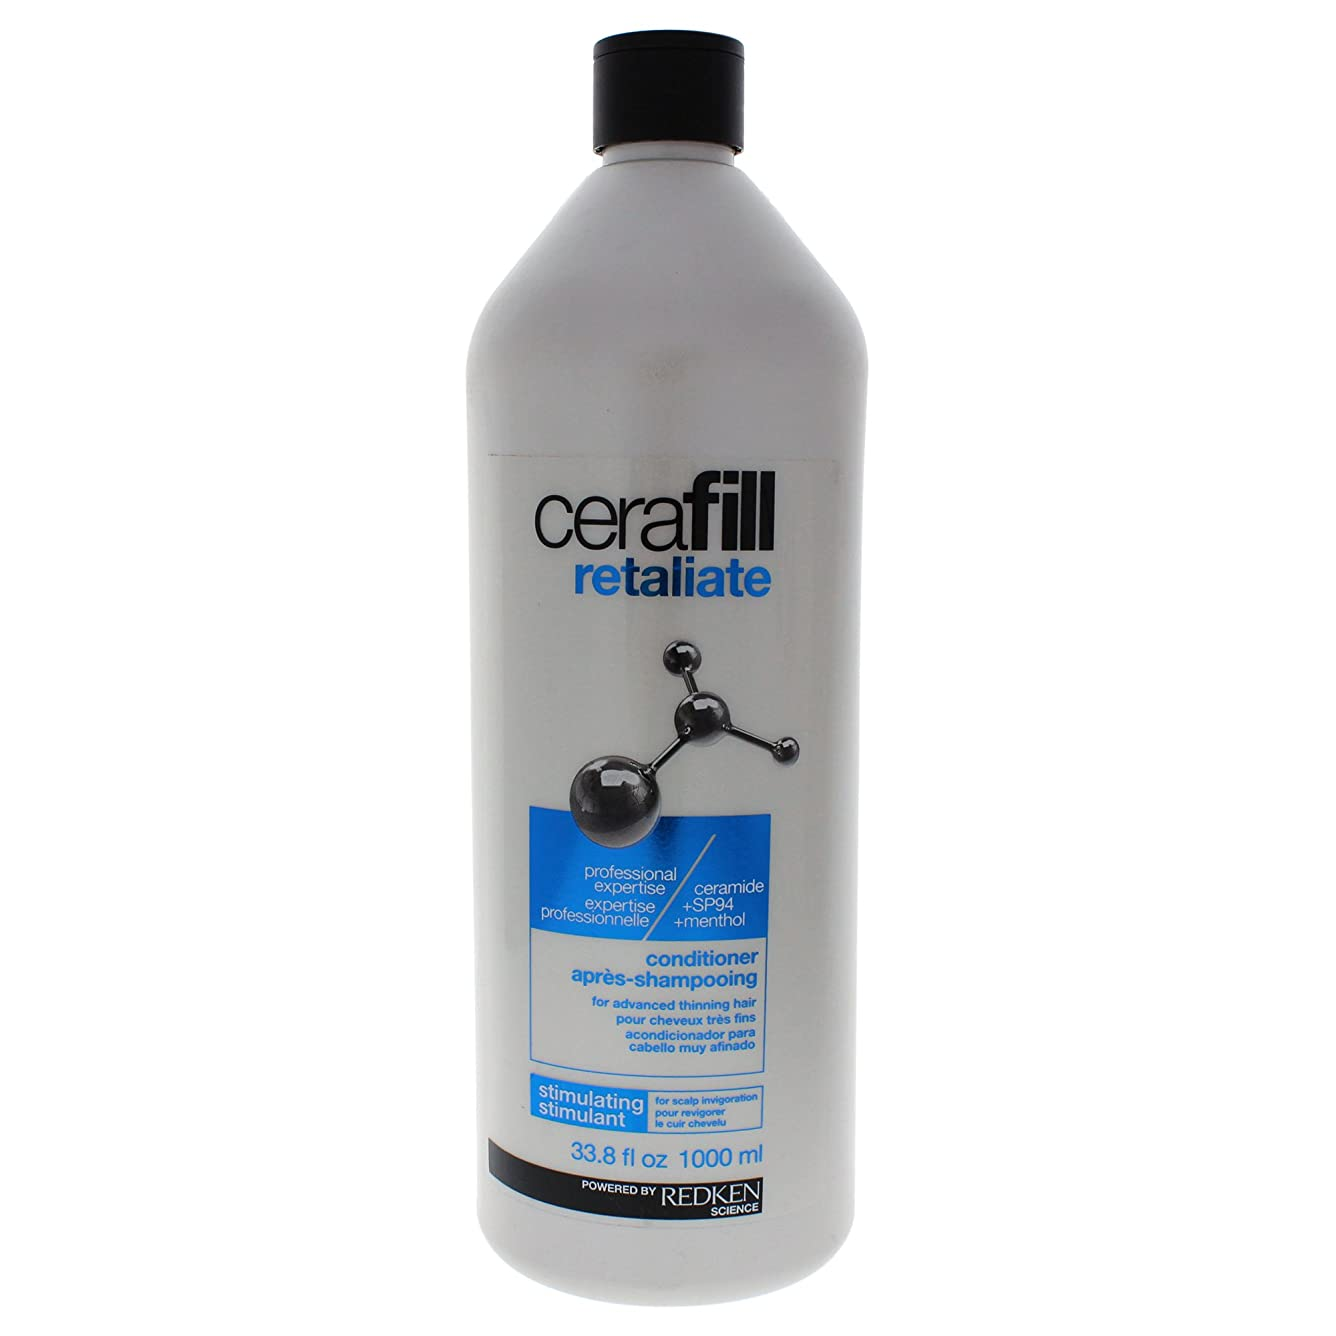 実質的に裁判所ダウンタウンレッドケン Cerafill Retaliate Stimulating Conditioner (For Advanced Thinning Hair) 1000ml